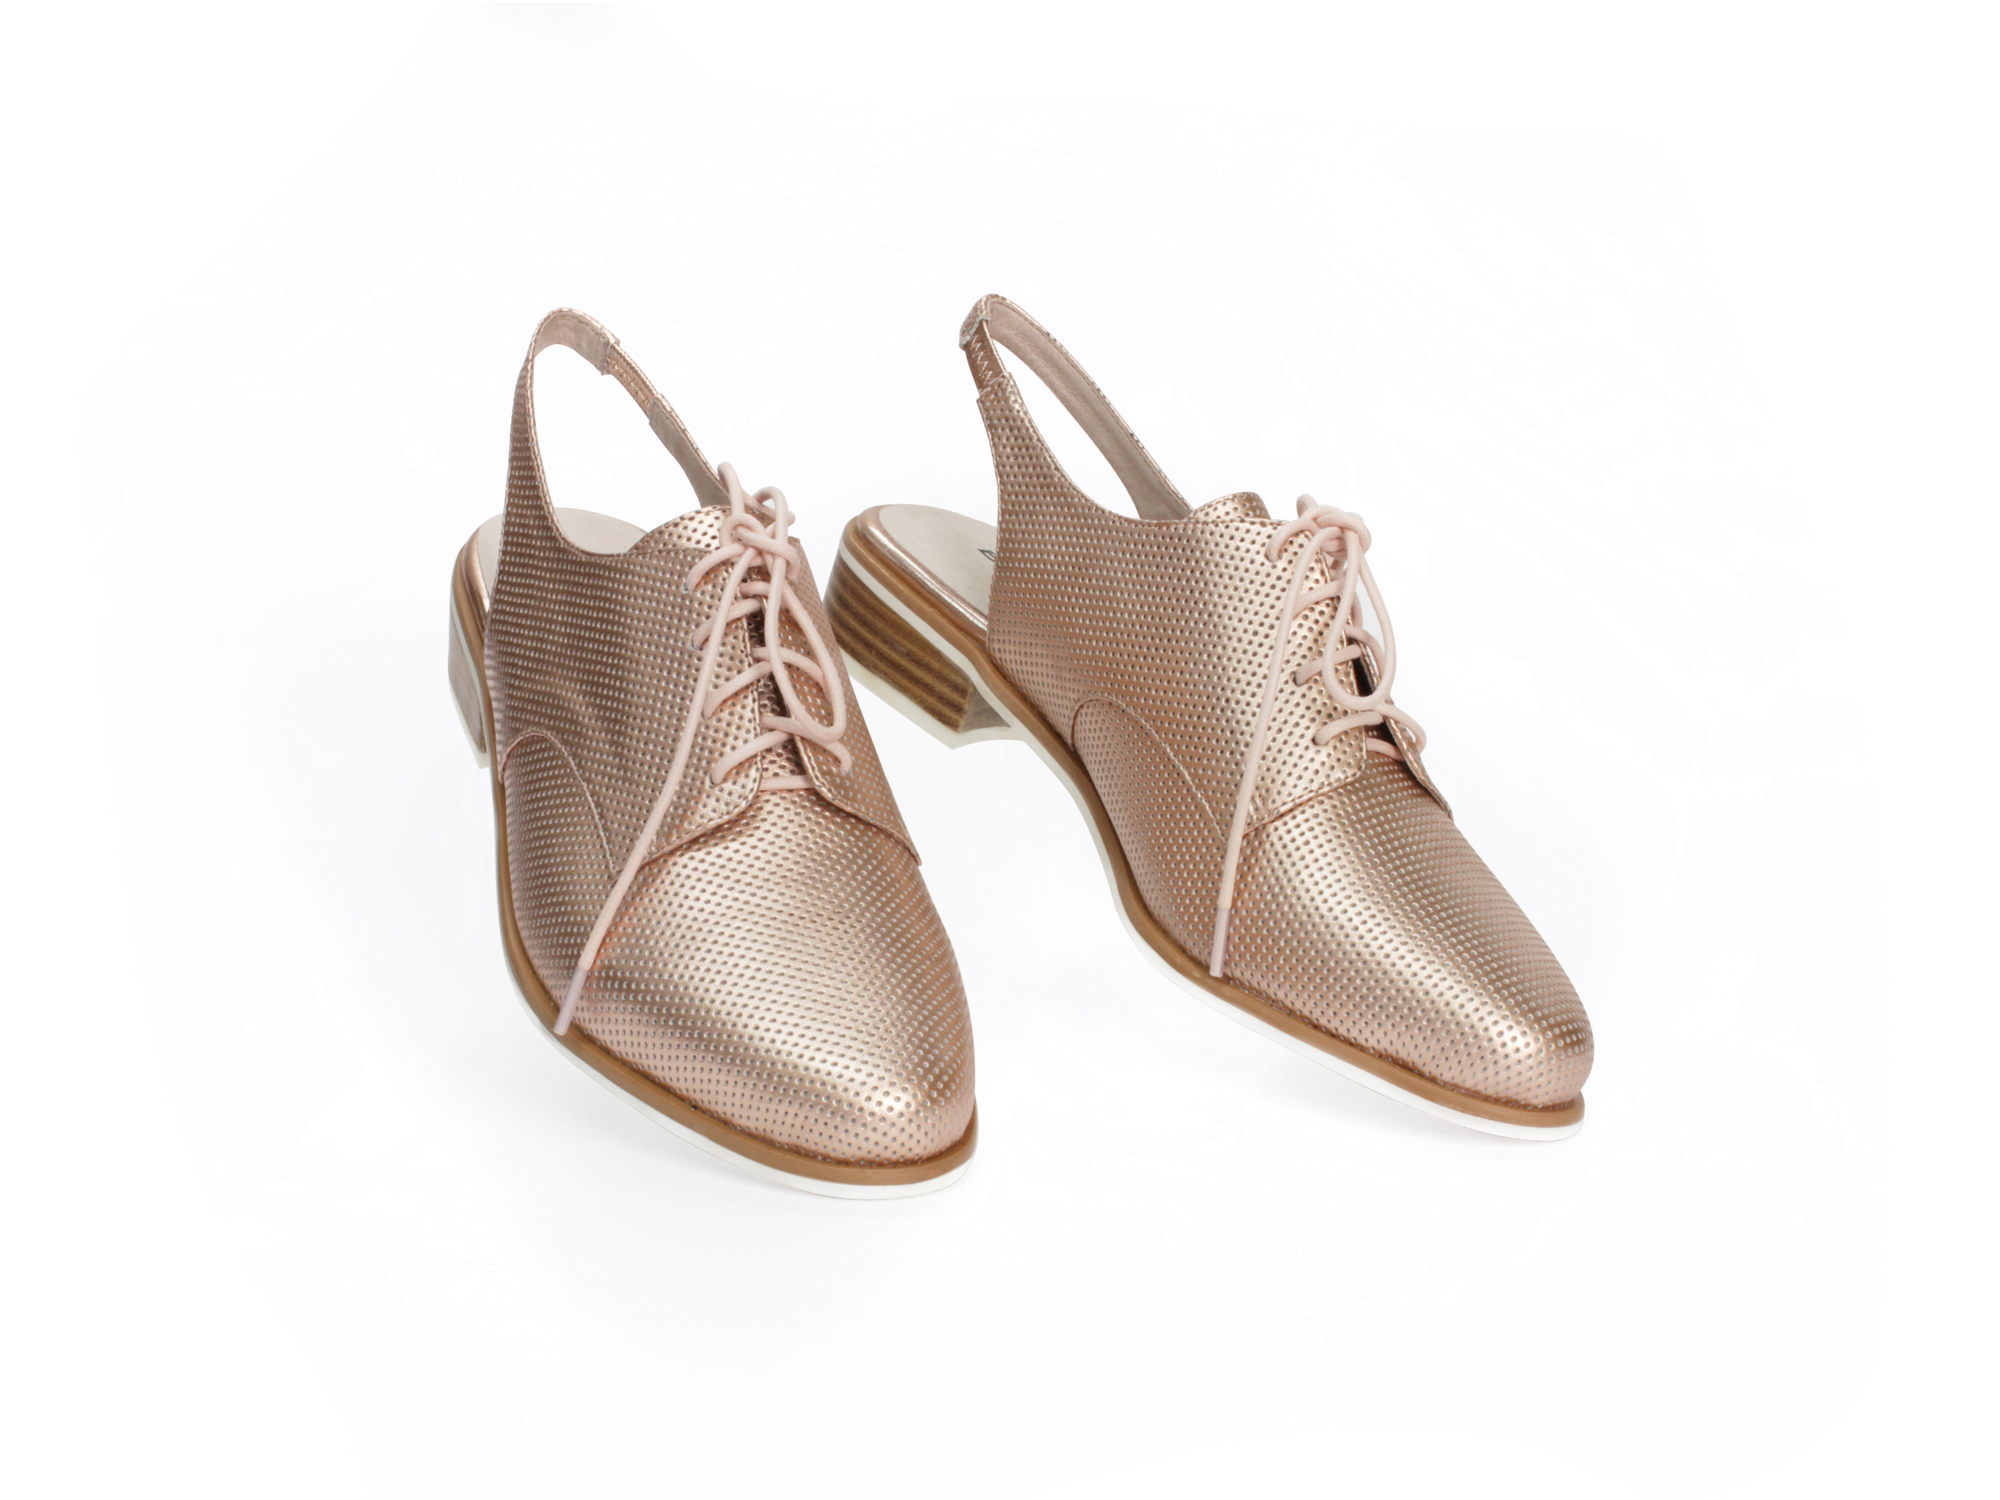 taylors we love shoes  product photography